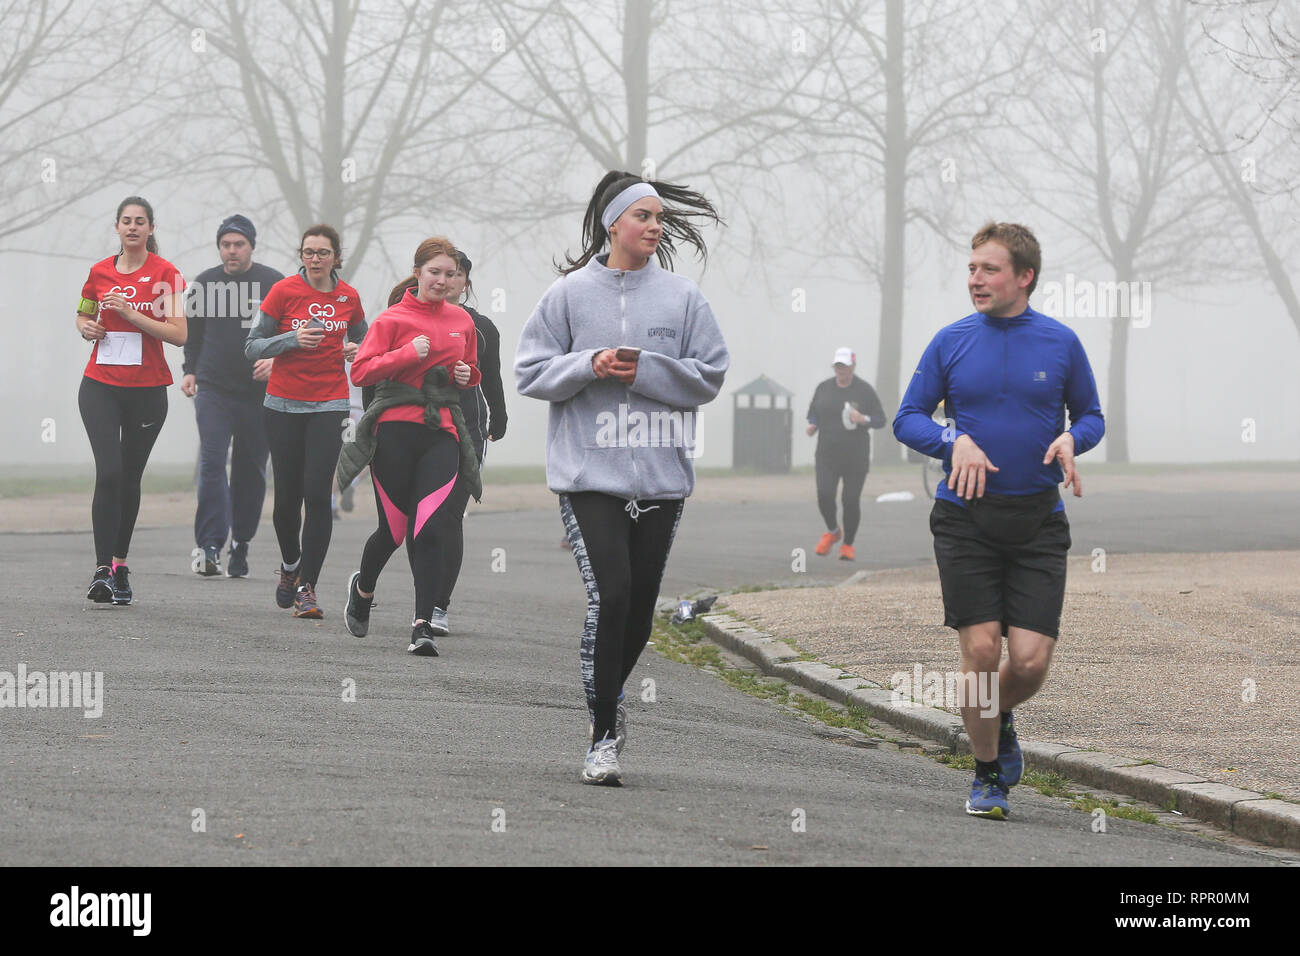 Finsbury Park, North London, UK. 23rd Feb 2019. Hundreds of runners take park in 5K Park Run in Finsbury Park, north London in thick fog.   Credit: Dinendra Haria/Alamy Live News Stock Photo